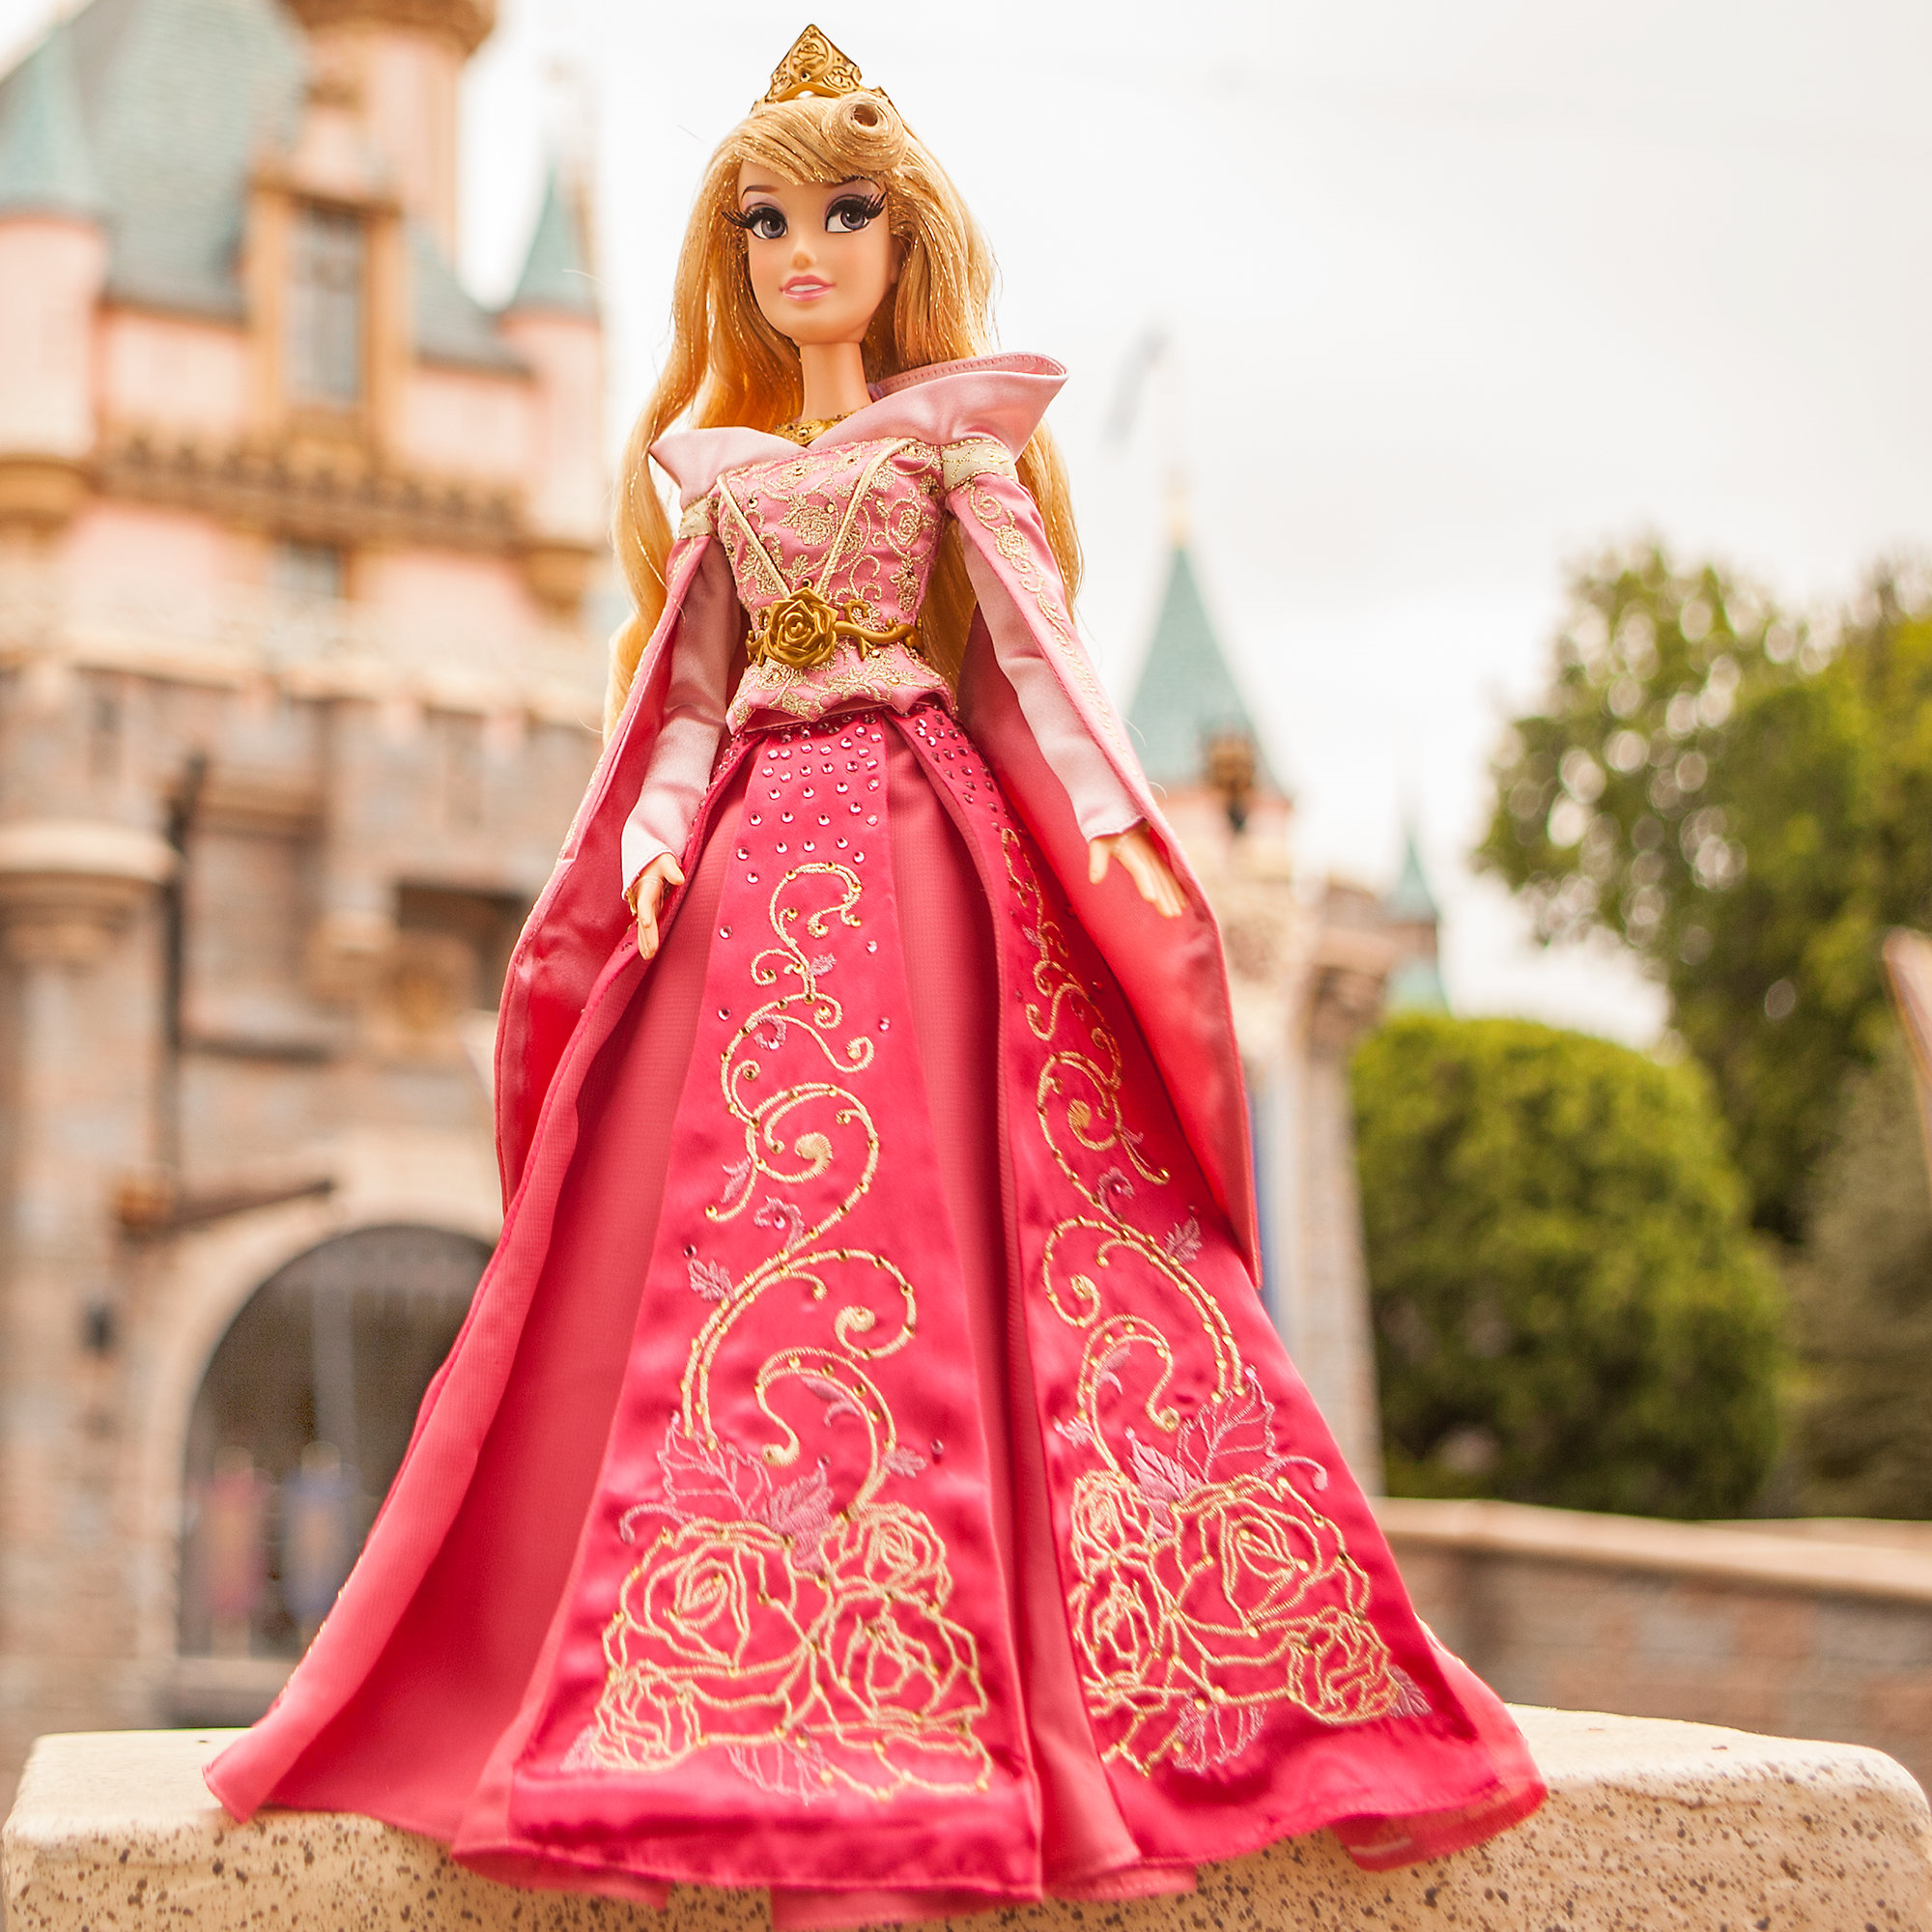 Disney S Limited Edition Sleeping Beauty Doll Png